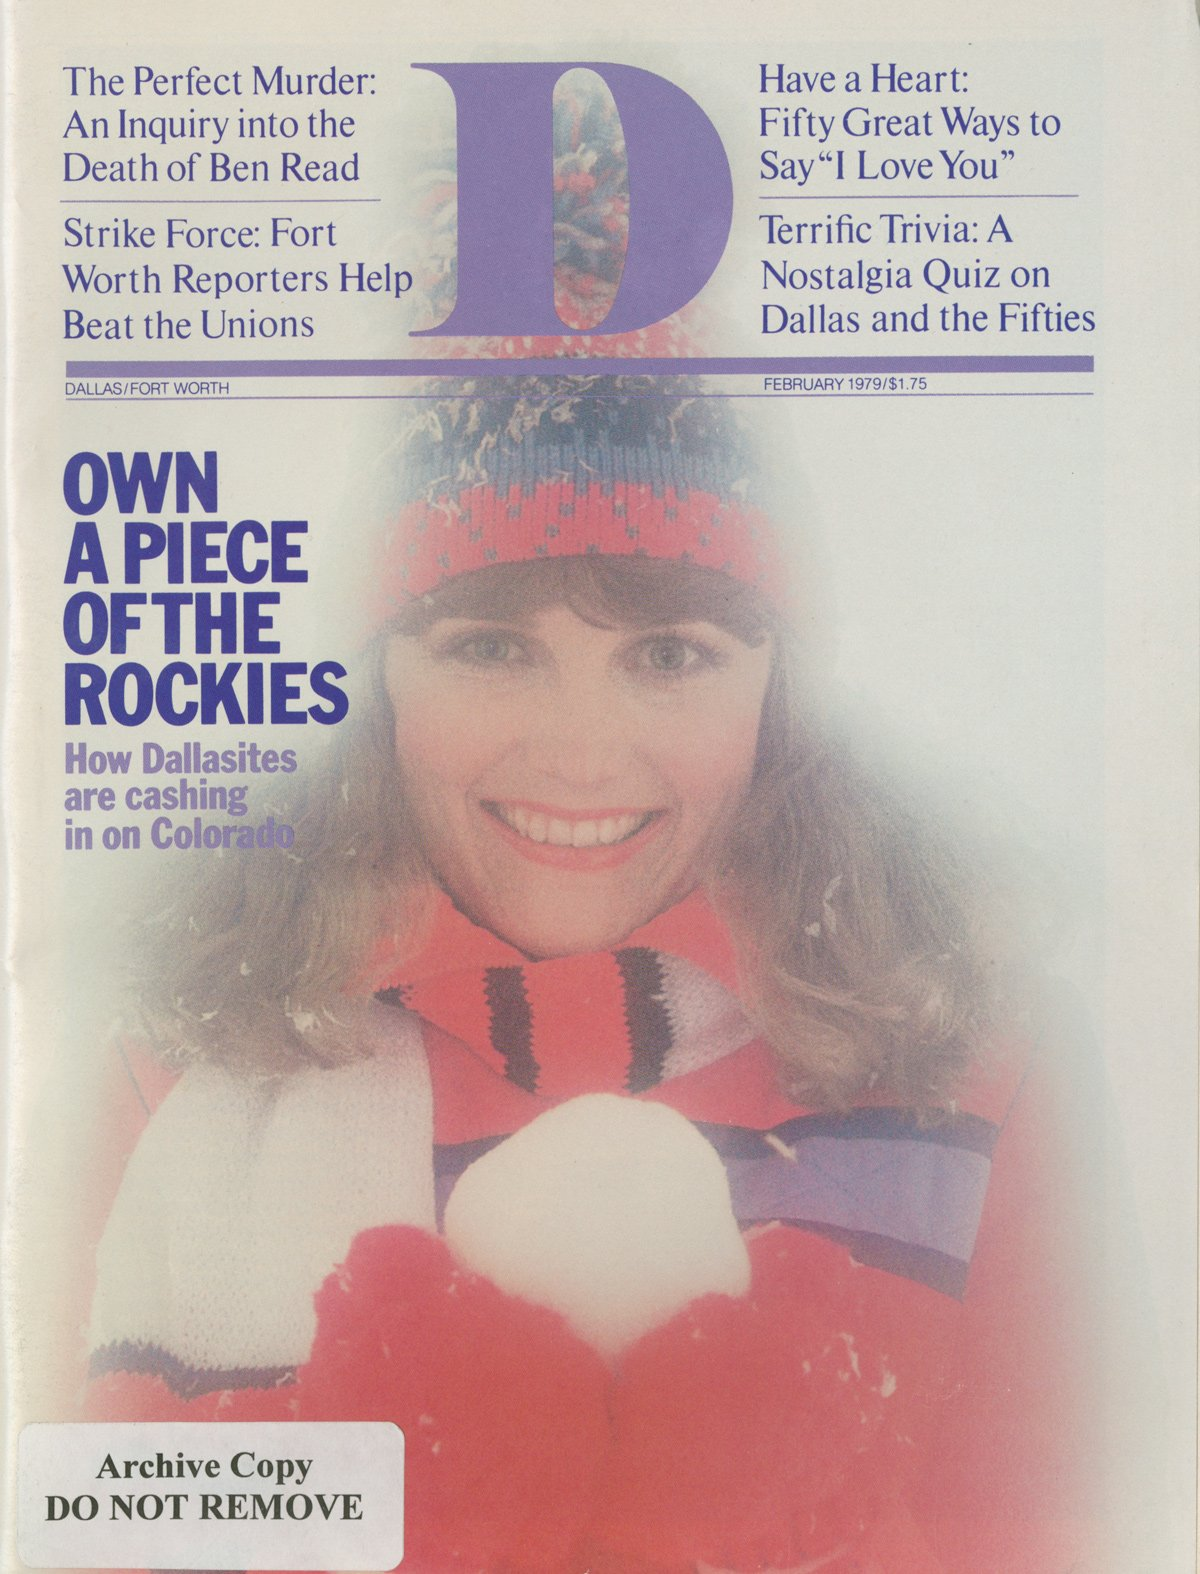 February 1979 cover